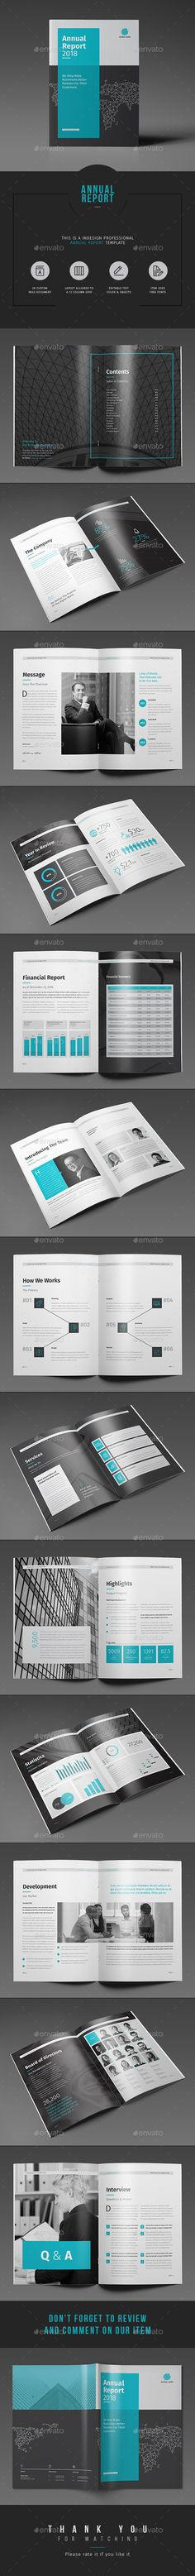 Annual Report Template InDesign INDD. Download here: https://graphicriver.net/item/annual-report/17420066?ref=ksioks